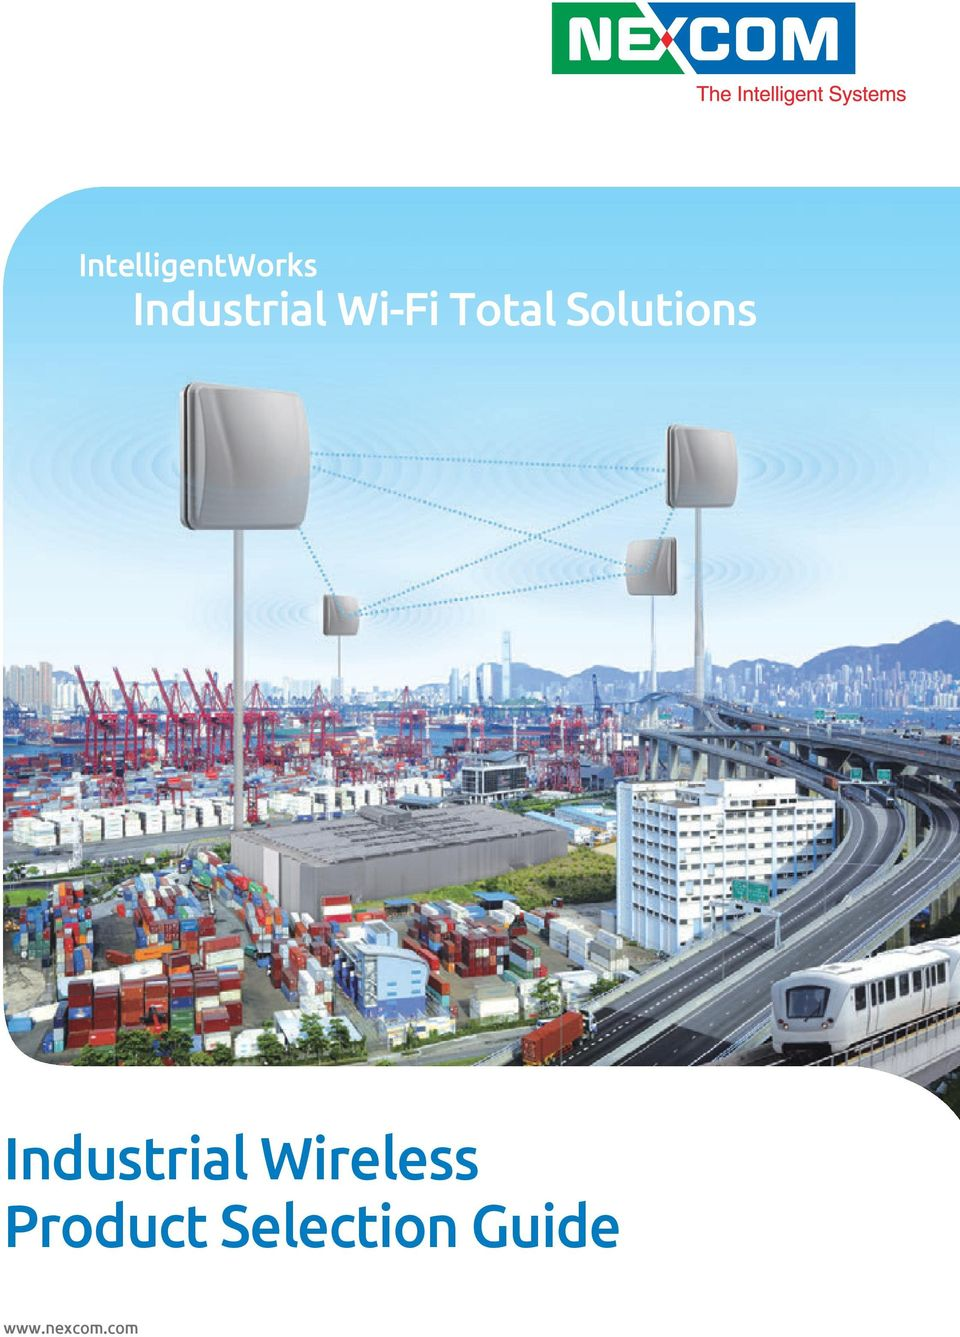 Industrial Wireless Product